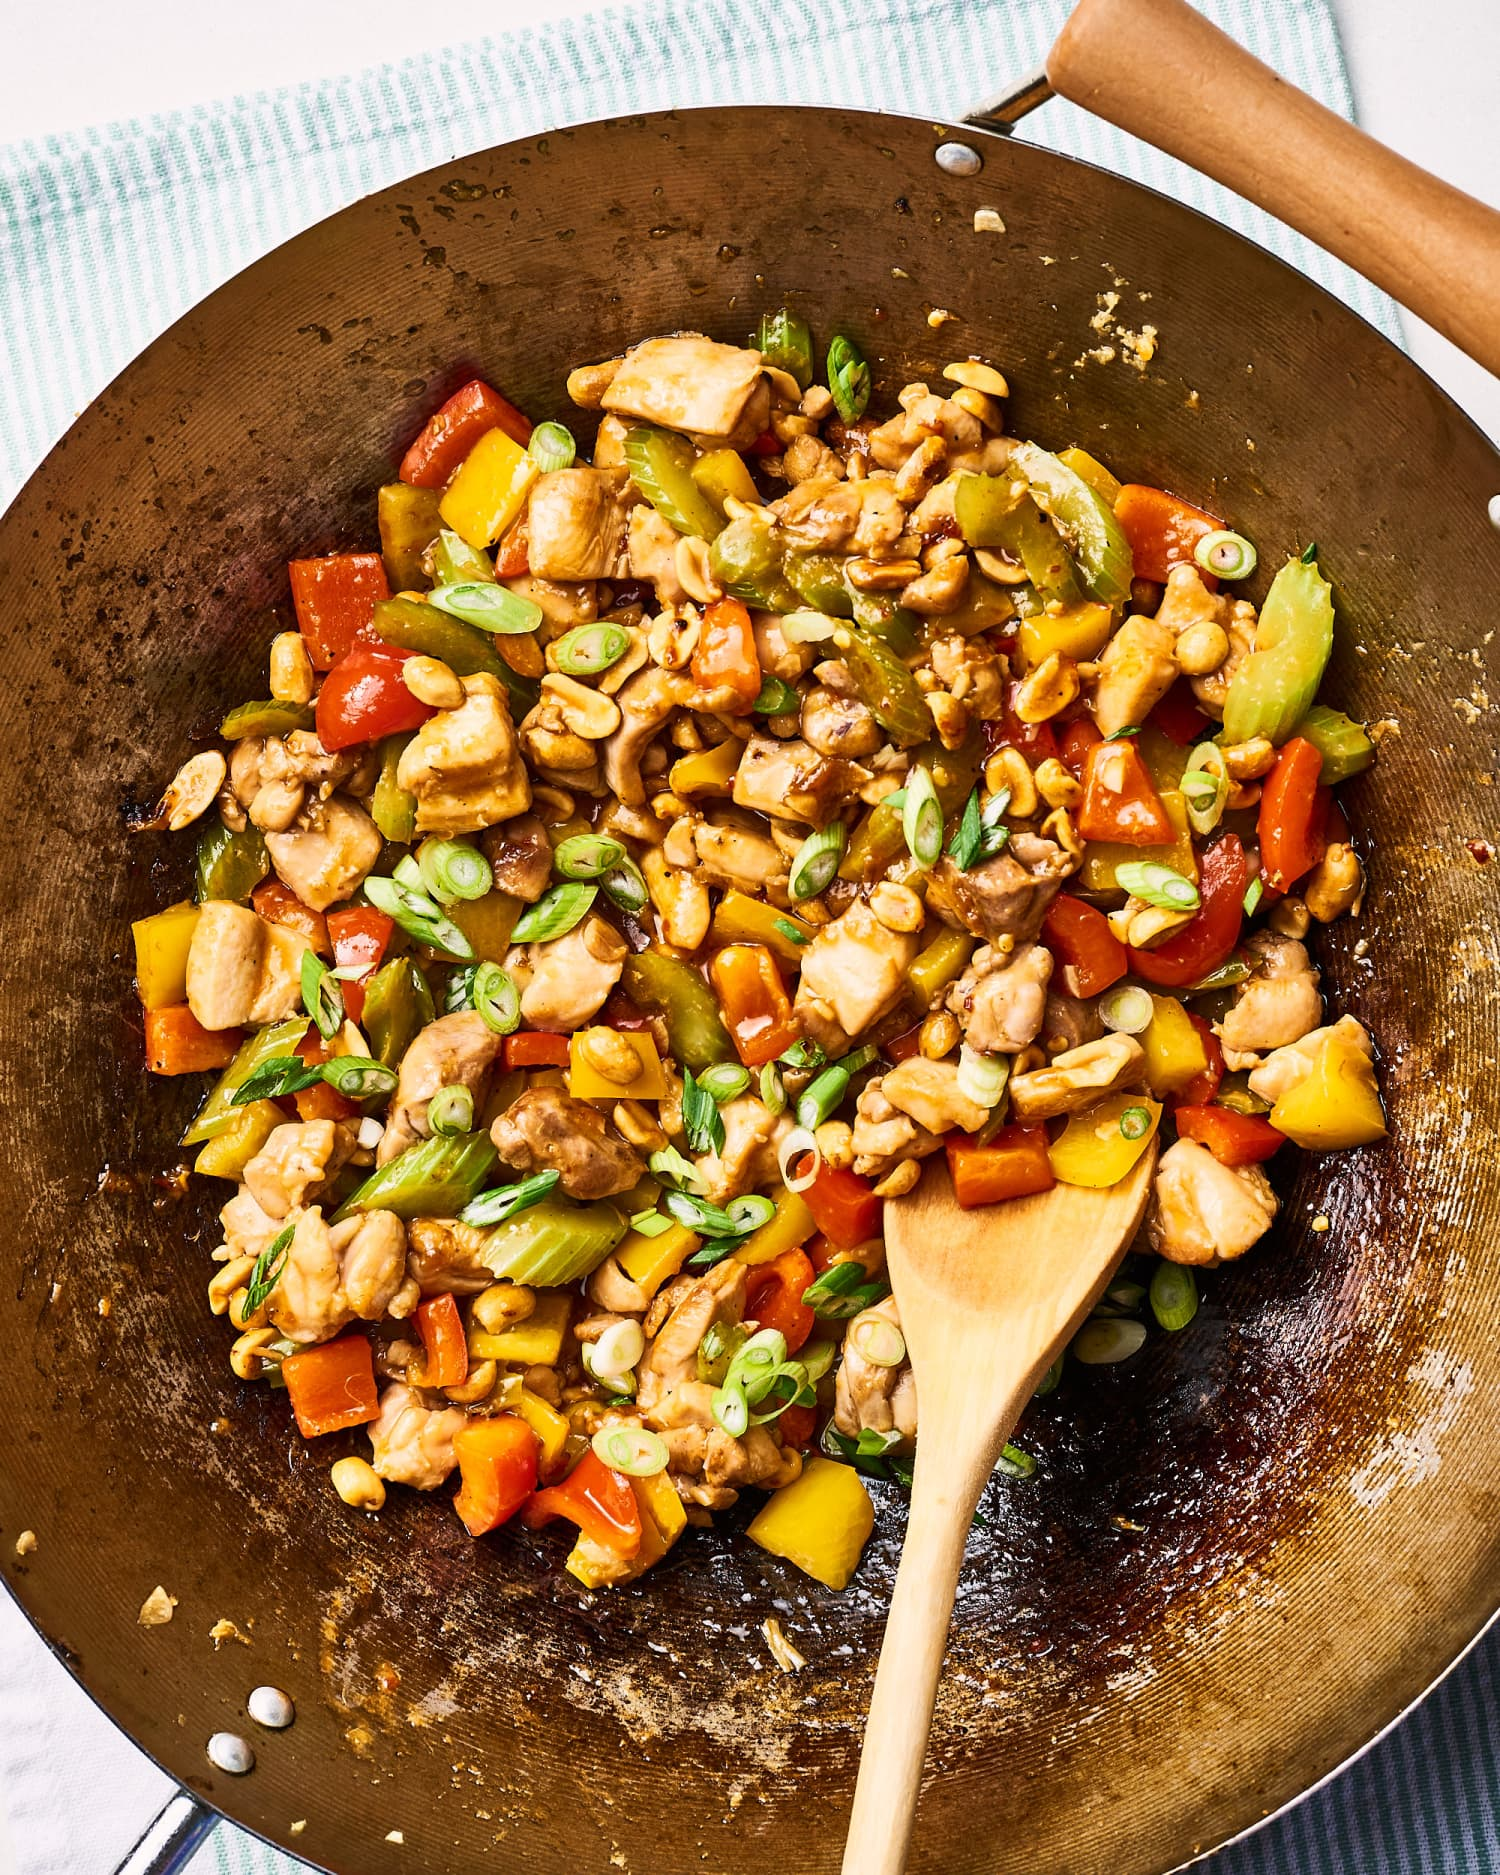 How To Make Kung Pao Chicken That Tastes Better than Takeout